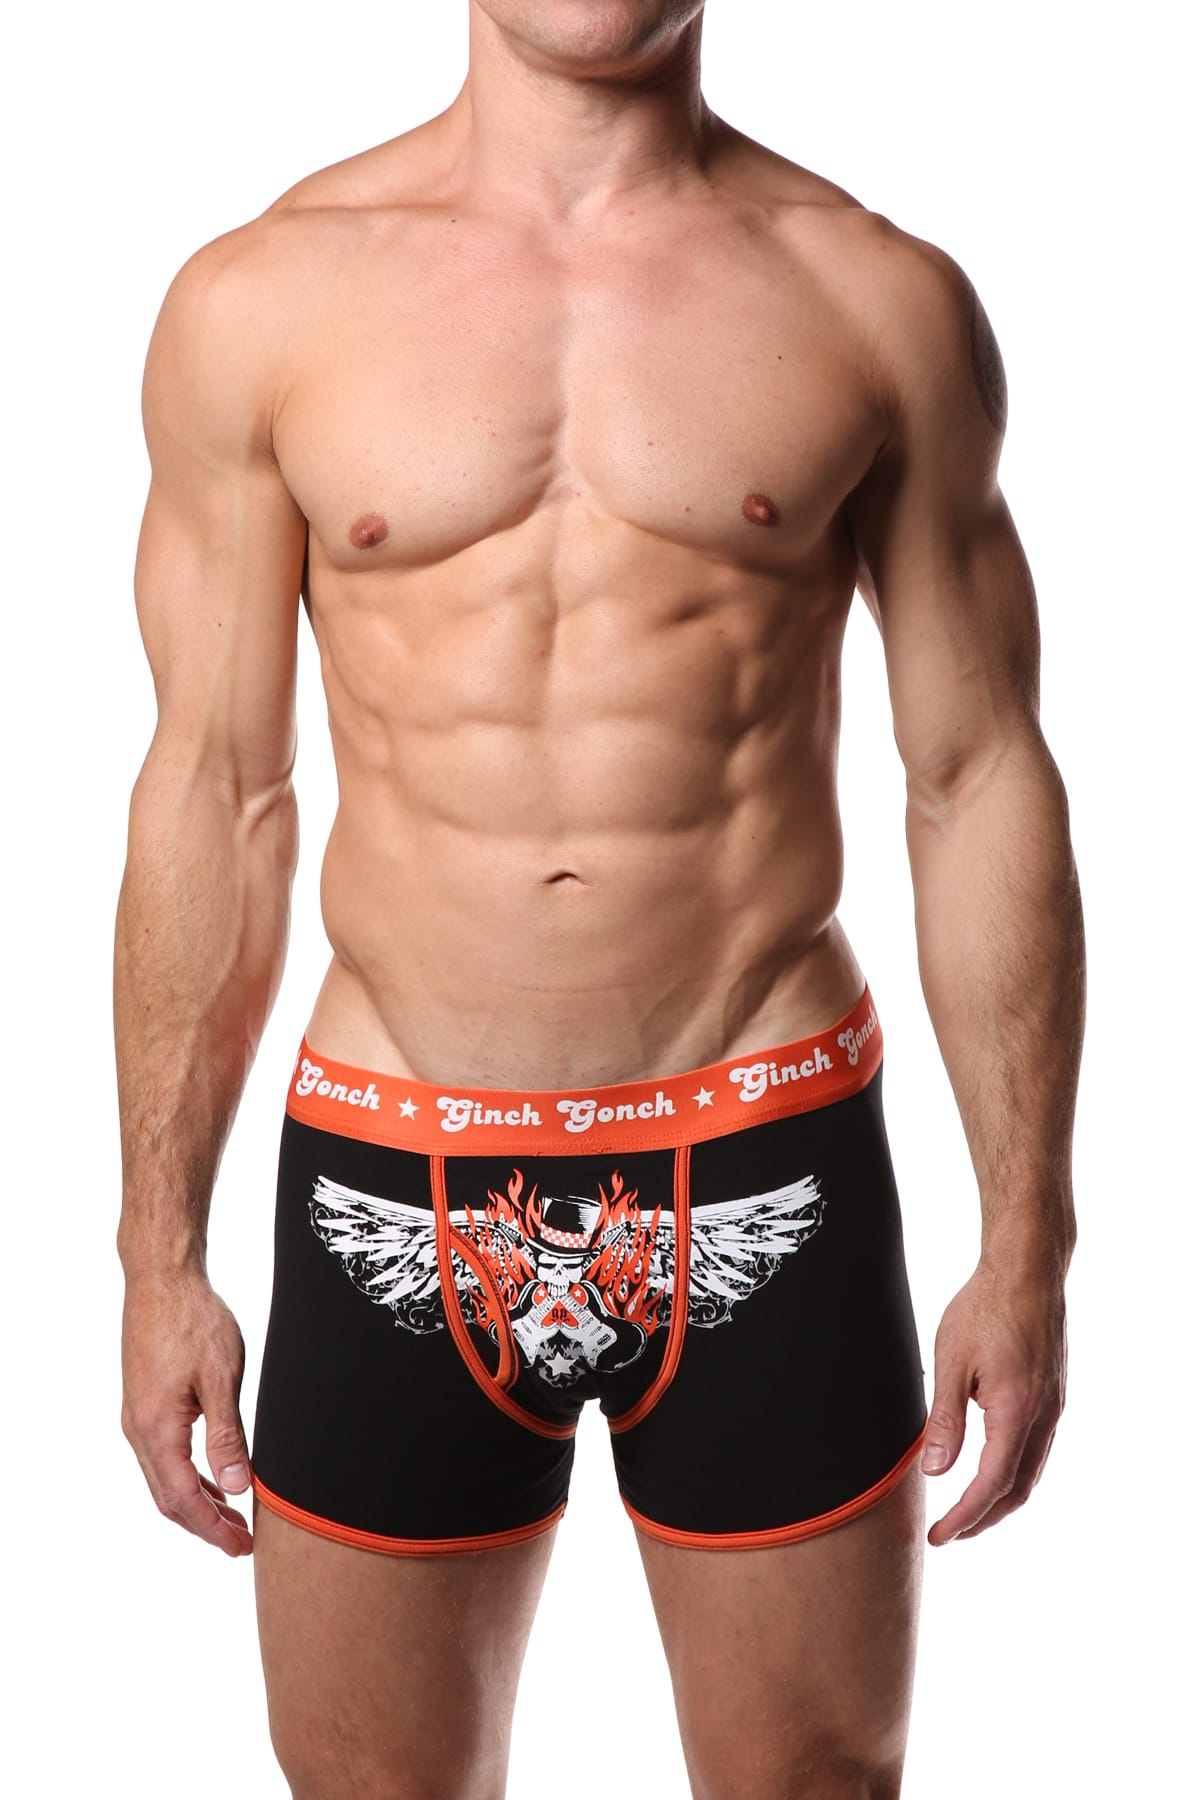 Ginch Gonch Rock-Me Sports-Brief (Trunk)